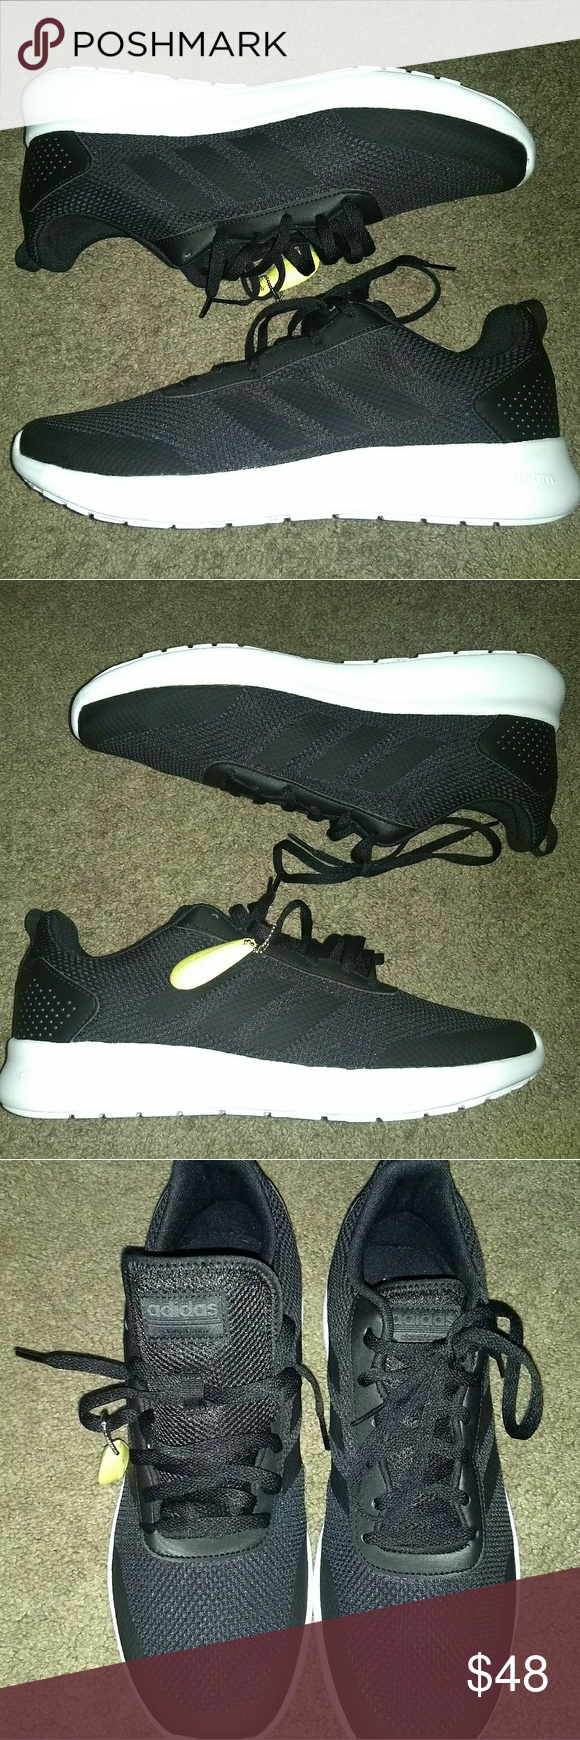 huge selection of 6794f 63a78 Adidas Element Race Running (DB1464) Men's Sz 13 Adidas Element Race  Running (DB1464) Athletic Sneakers Black White Men's SZ 13.